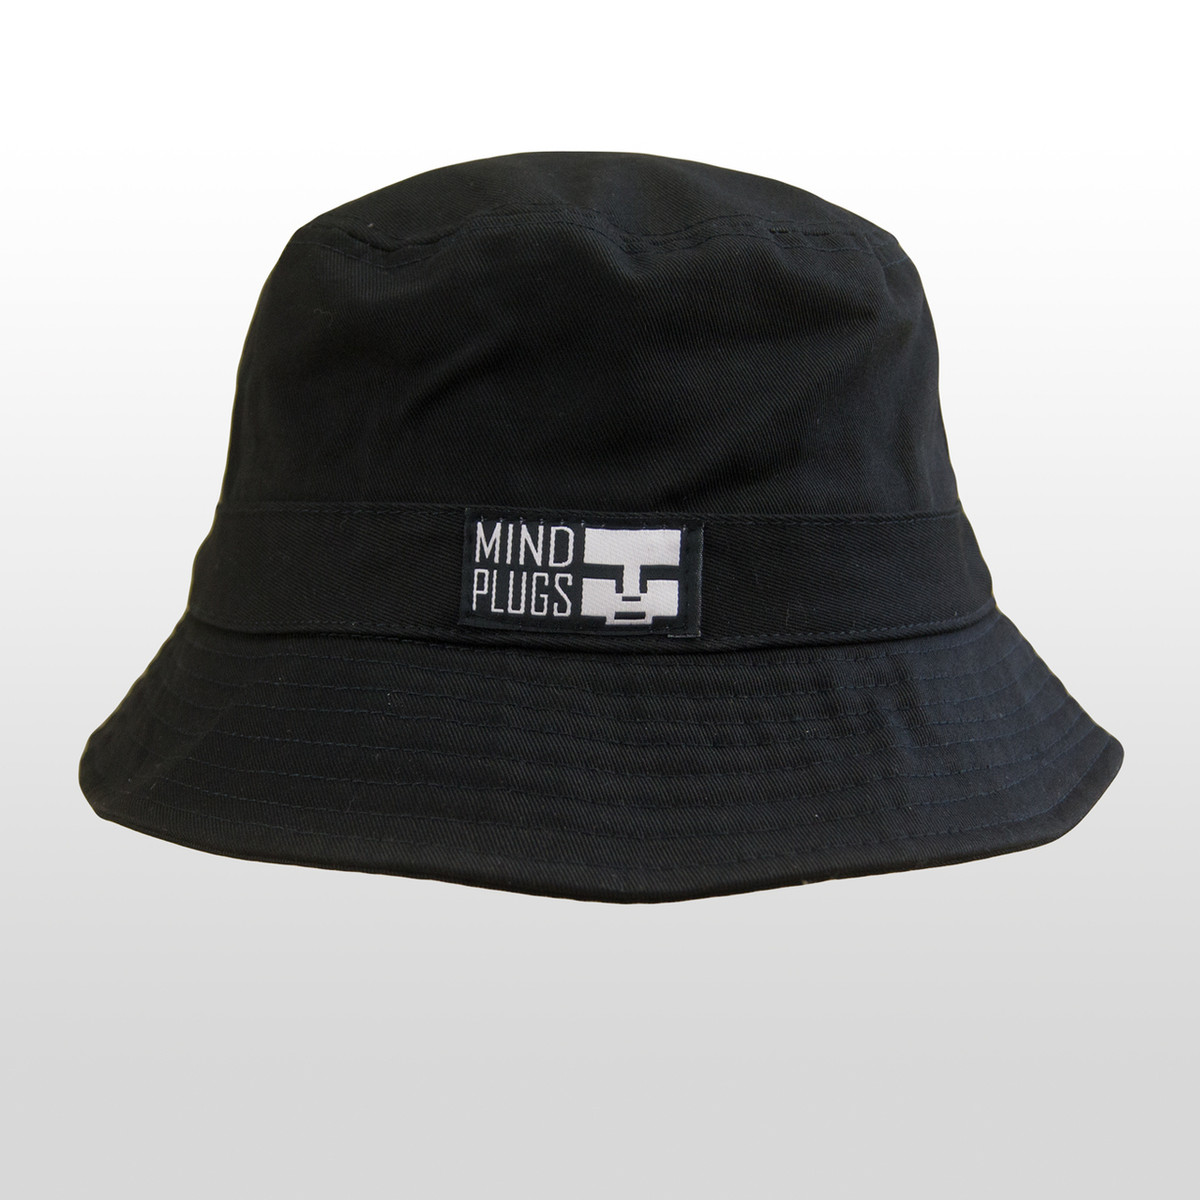 Keep it classy with this All Black Mind Plugs bucket hat. Dress it up or  dress it down 02a7ddf6c4f